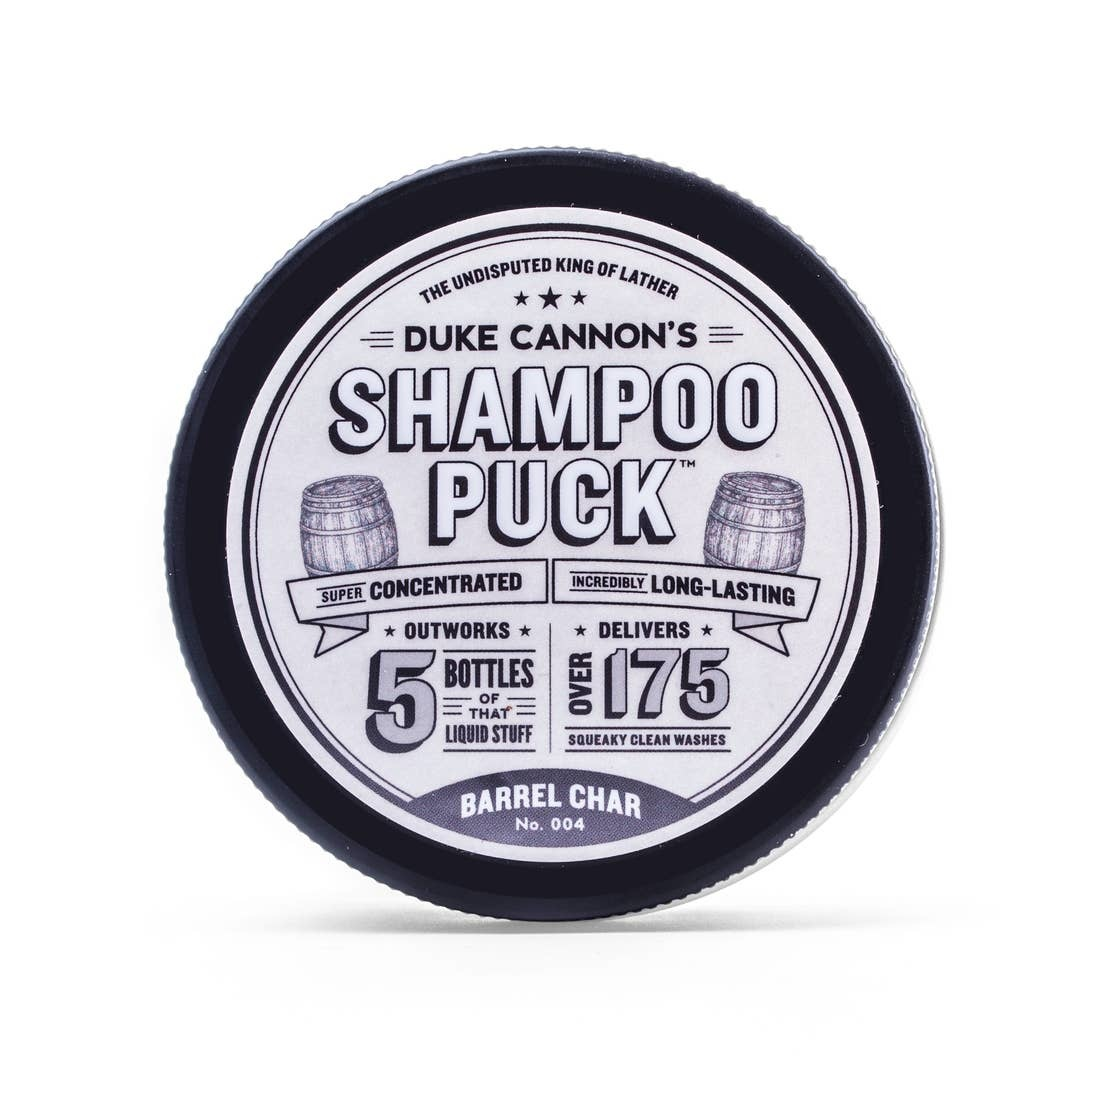 Duke Cannon Shampoo Puck/Barrel Char